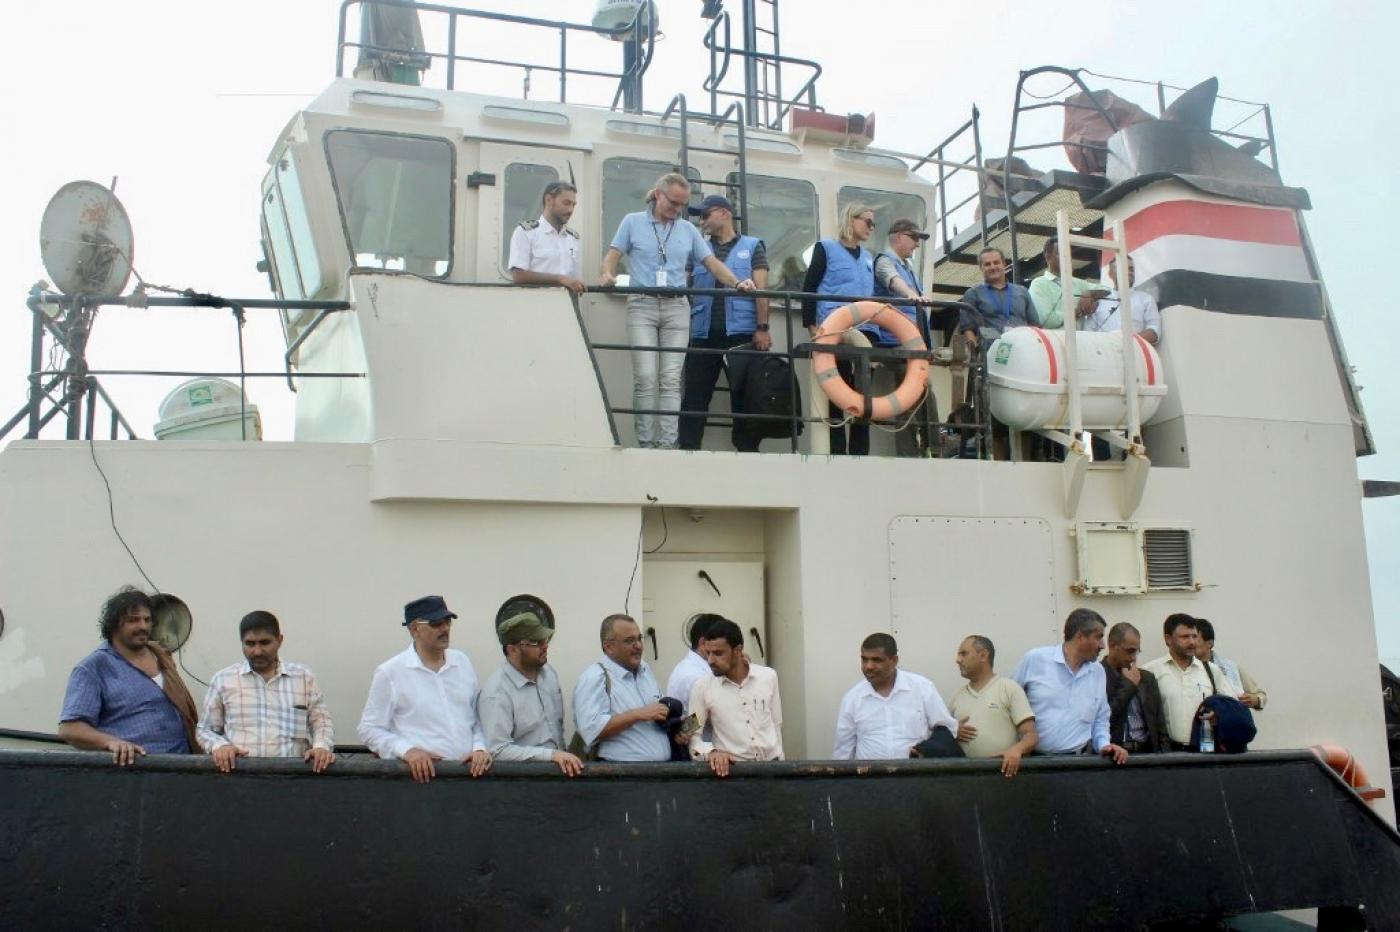 Yemen's warring sides meet 'aboard United Nations  vessel' over port city Hodeida